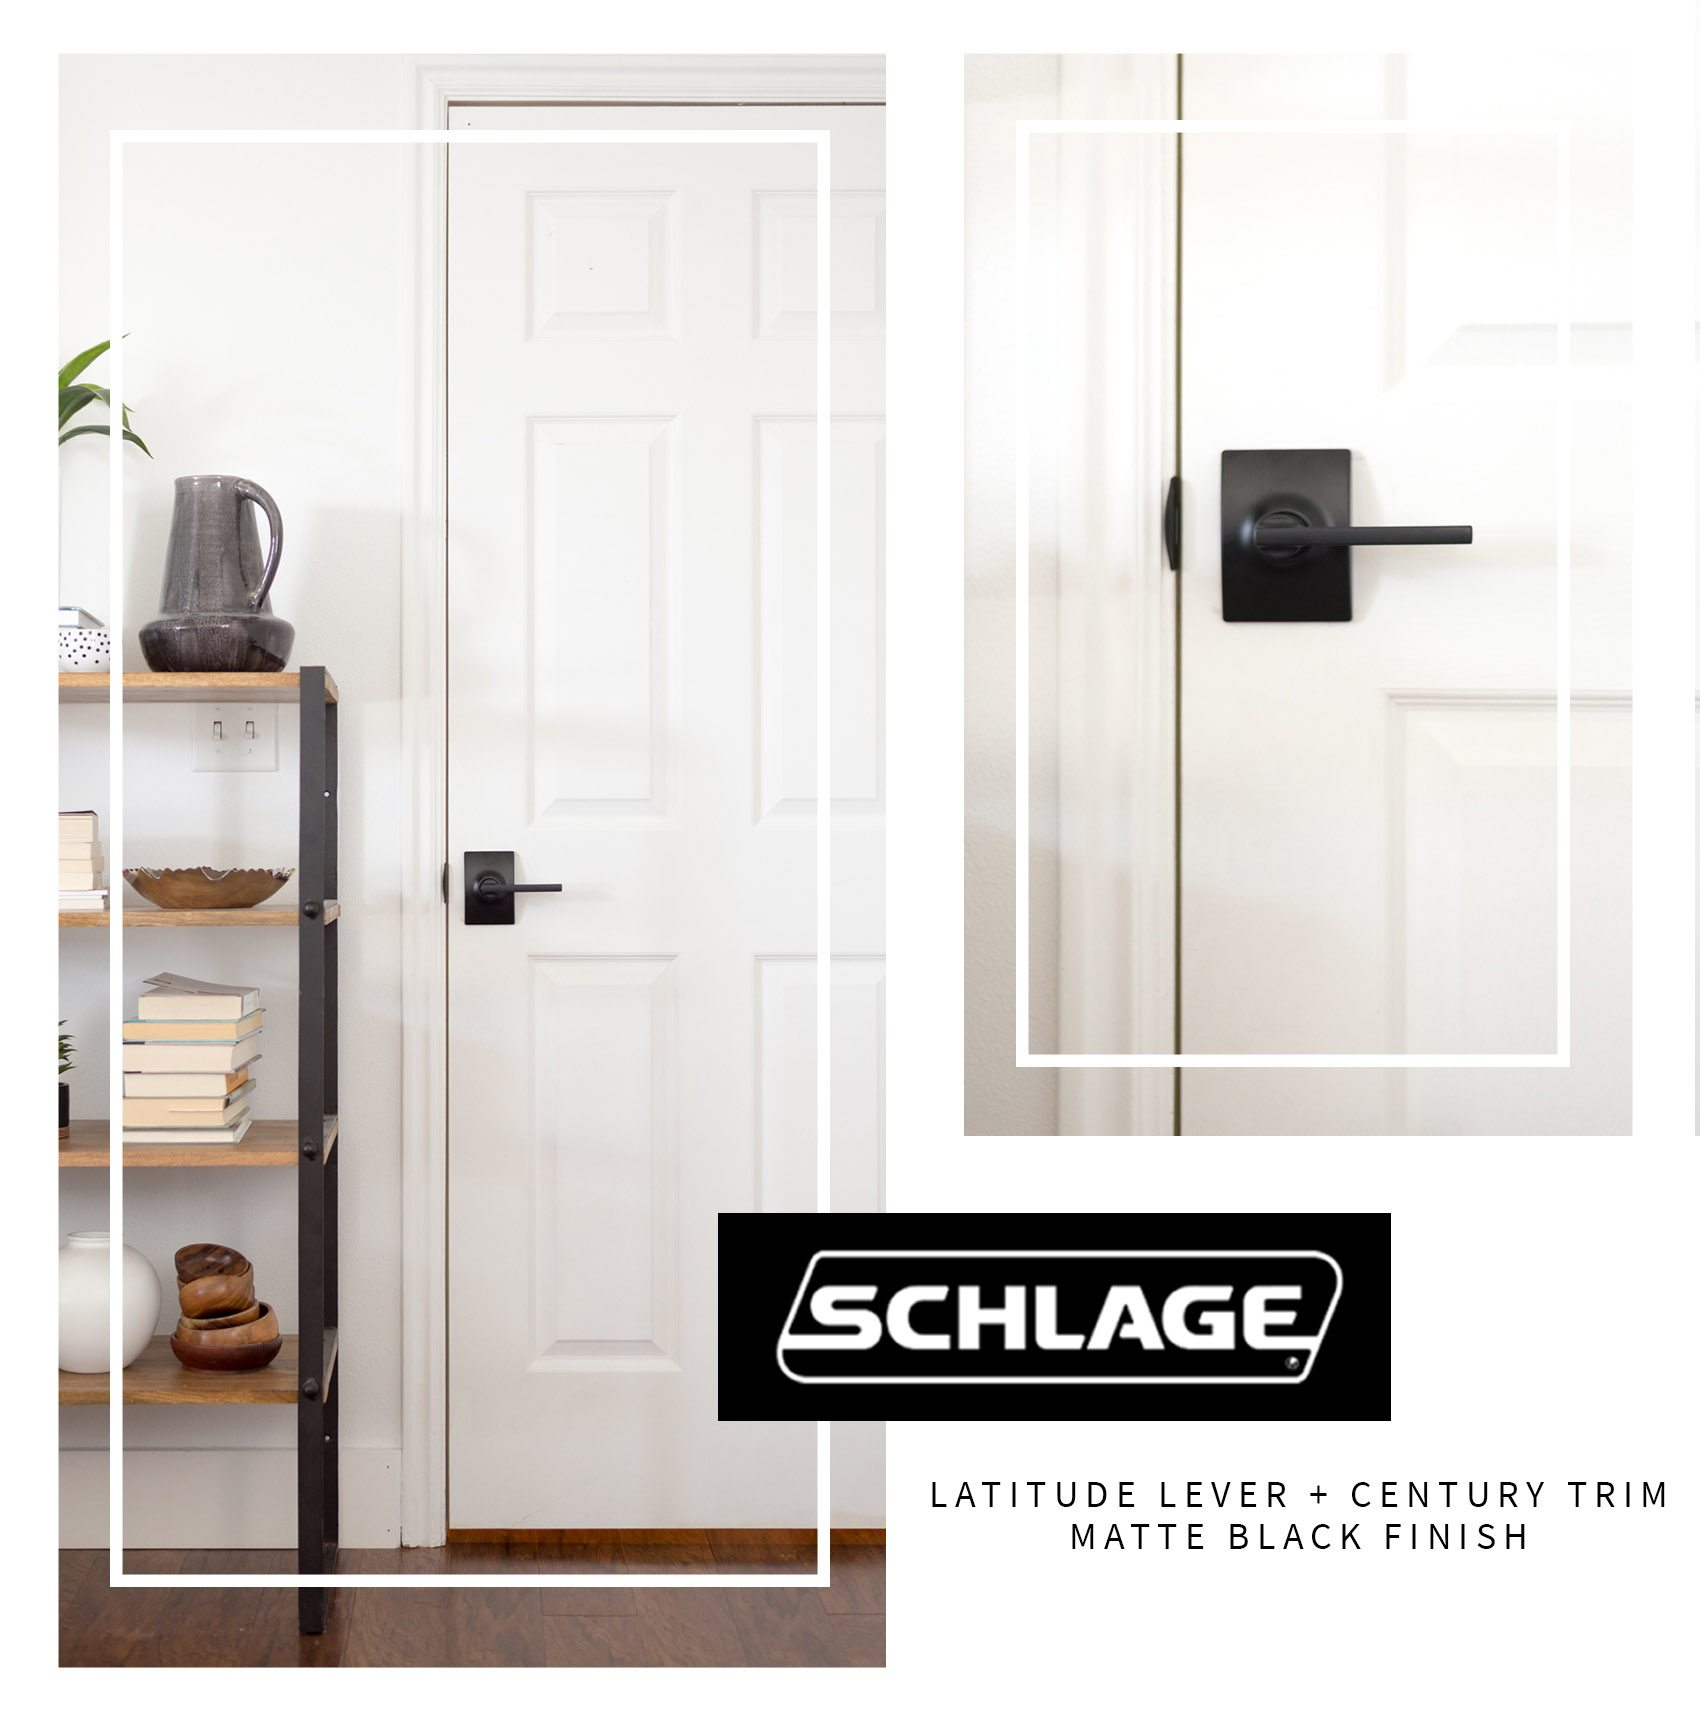 for handle hardware entry handlesets door ideas home remove gallery how knob weslock to beautiful interior trendy today plymouth handles exciting installation double levers front fresh a doors knobs schlage